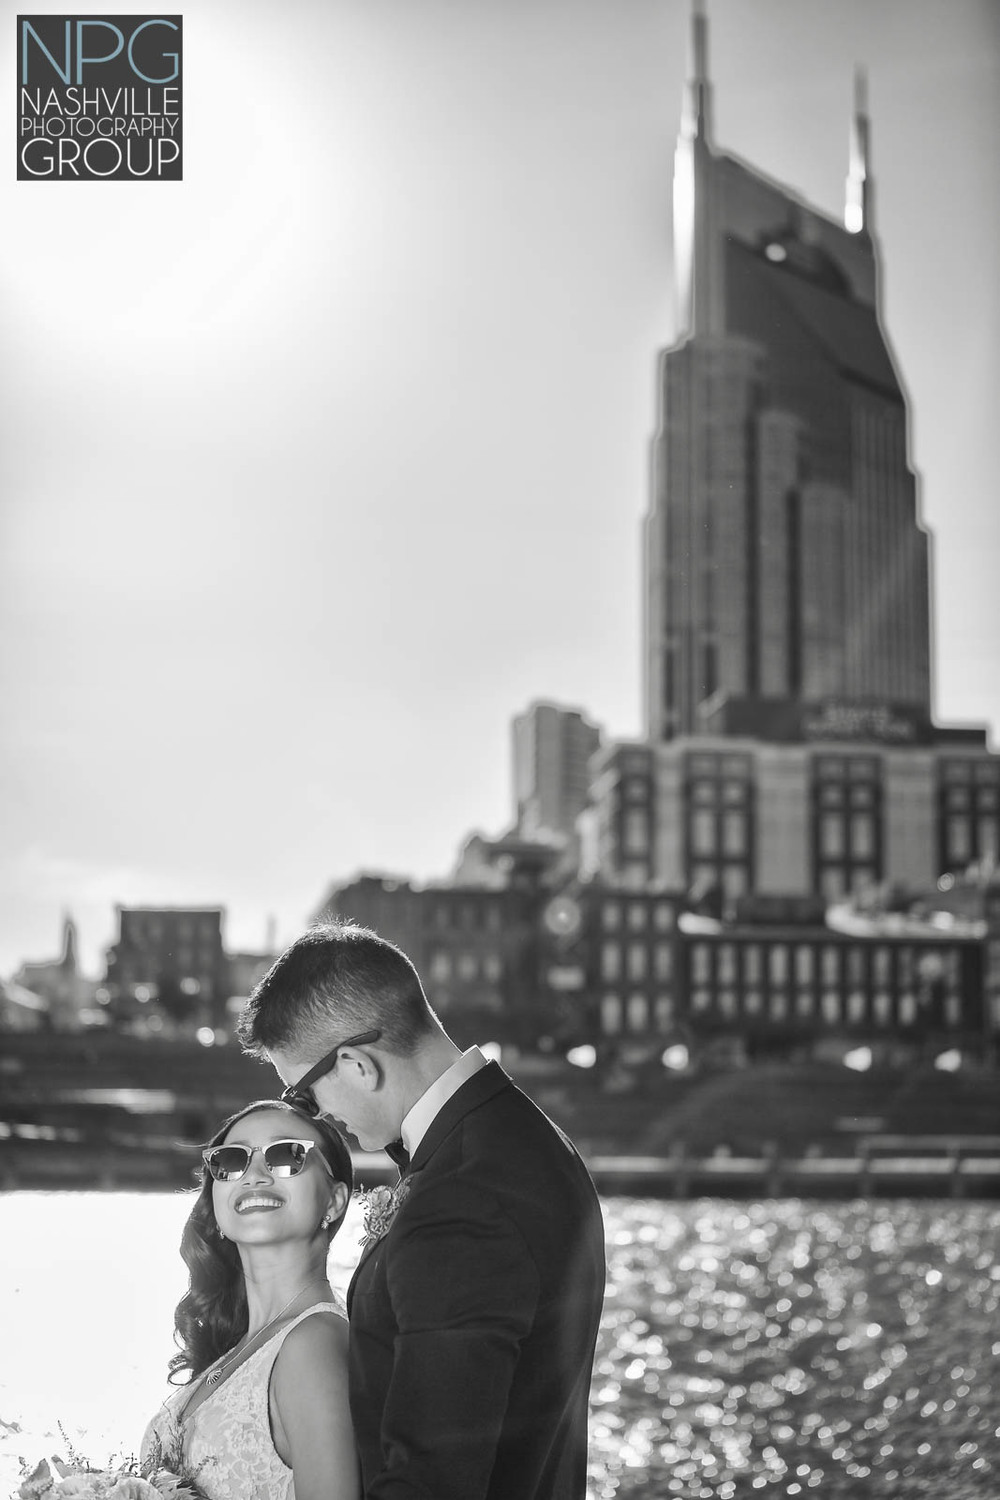 Nashville Photography Group wedding photographers1-5.jpg